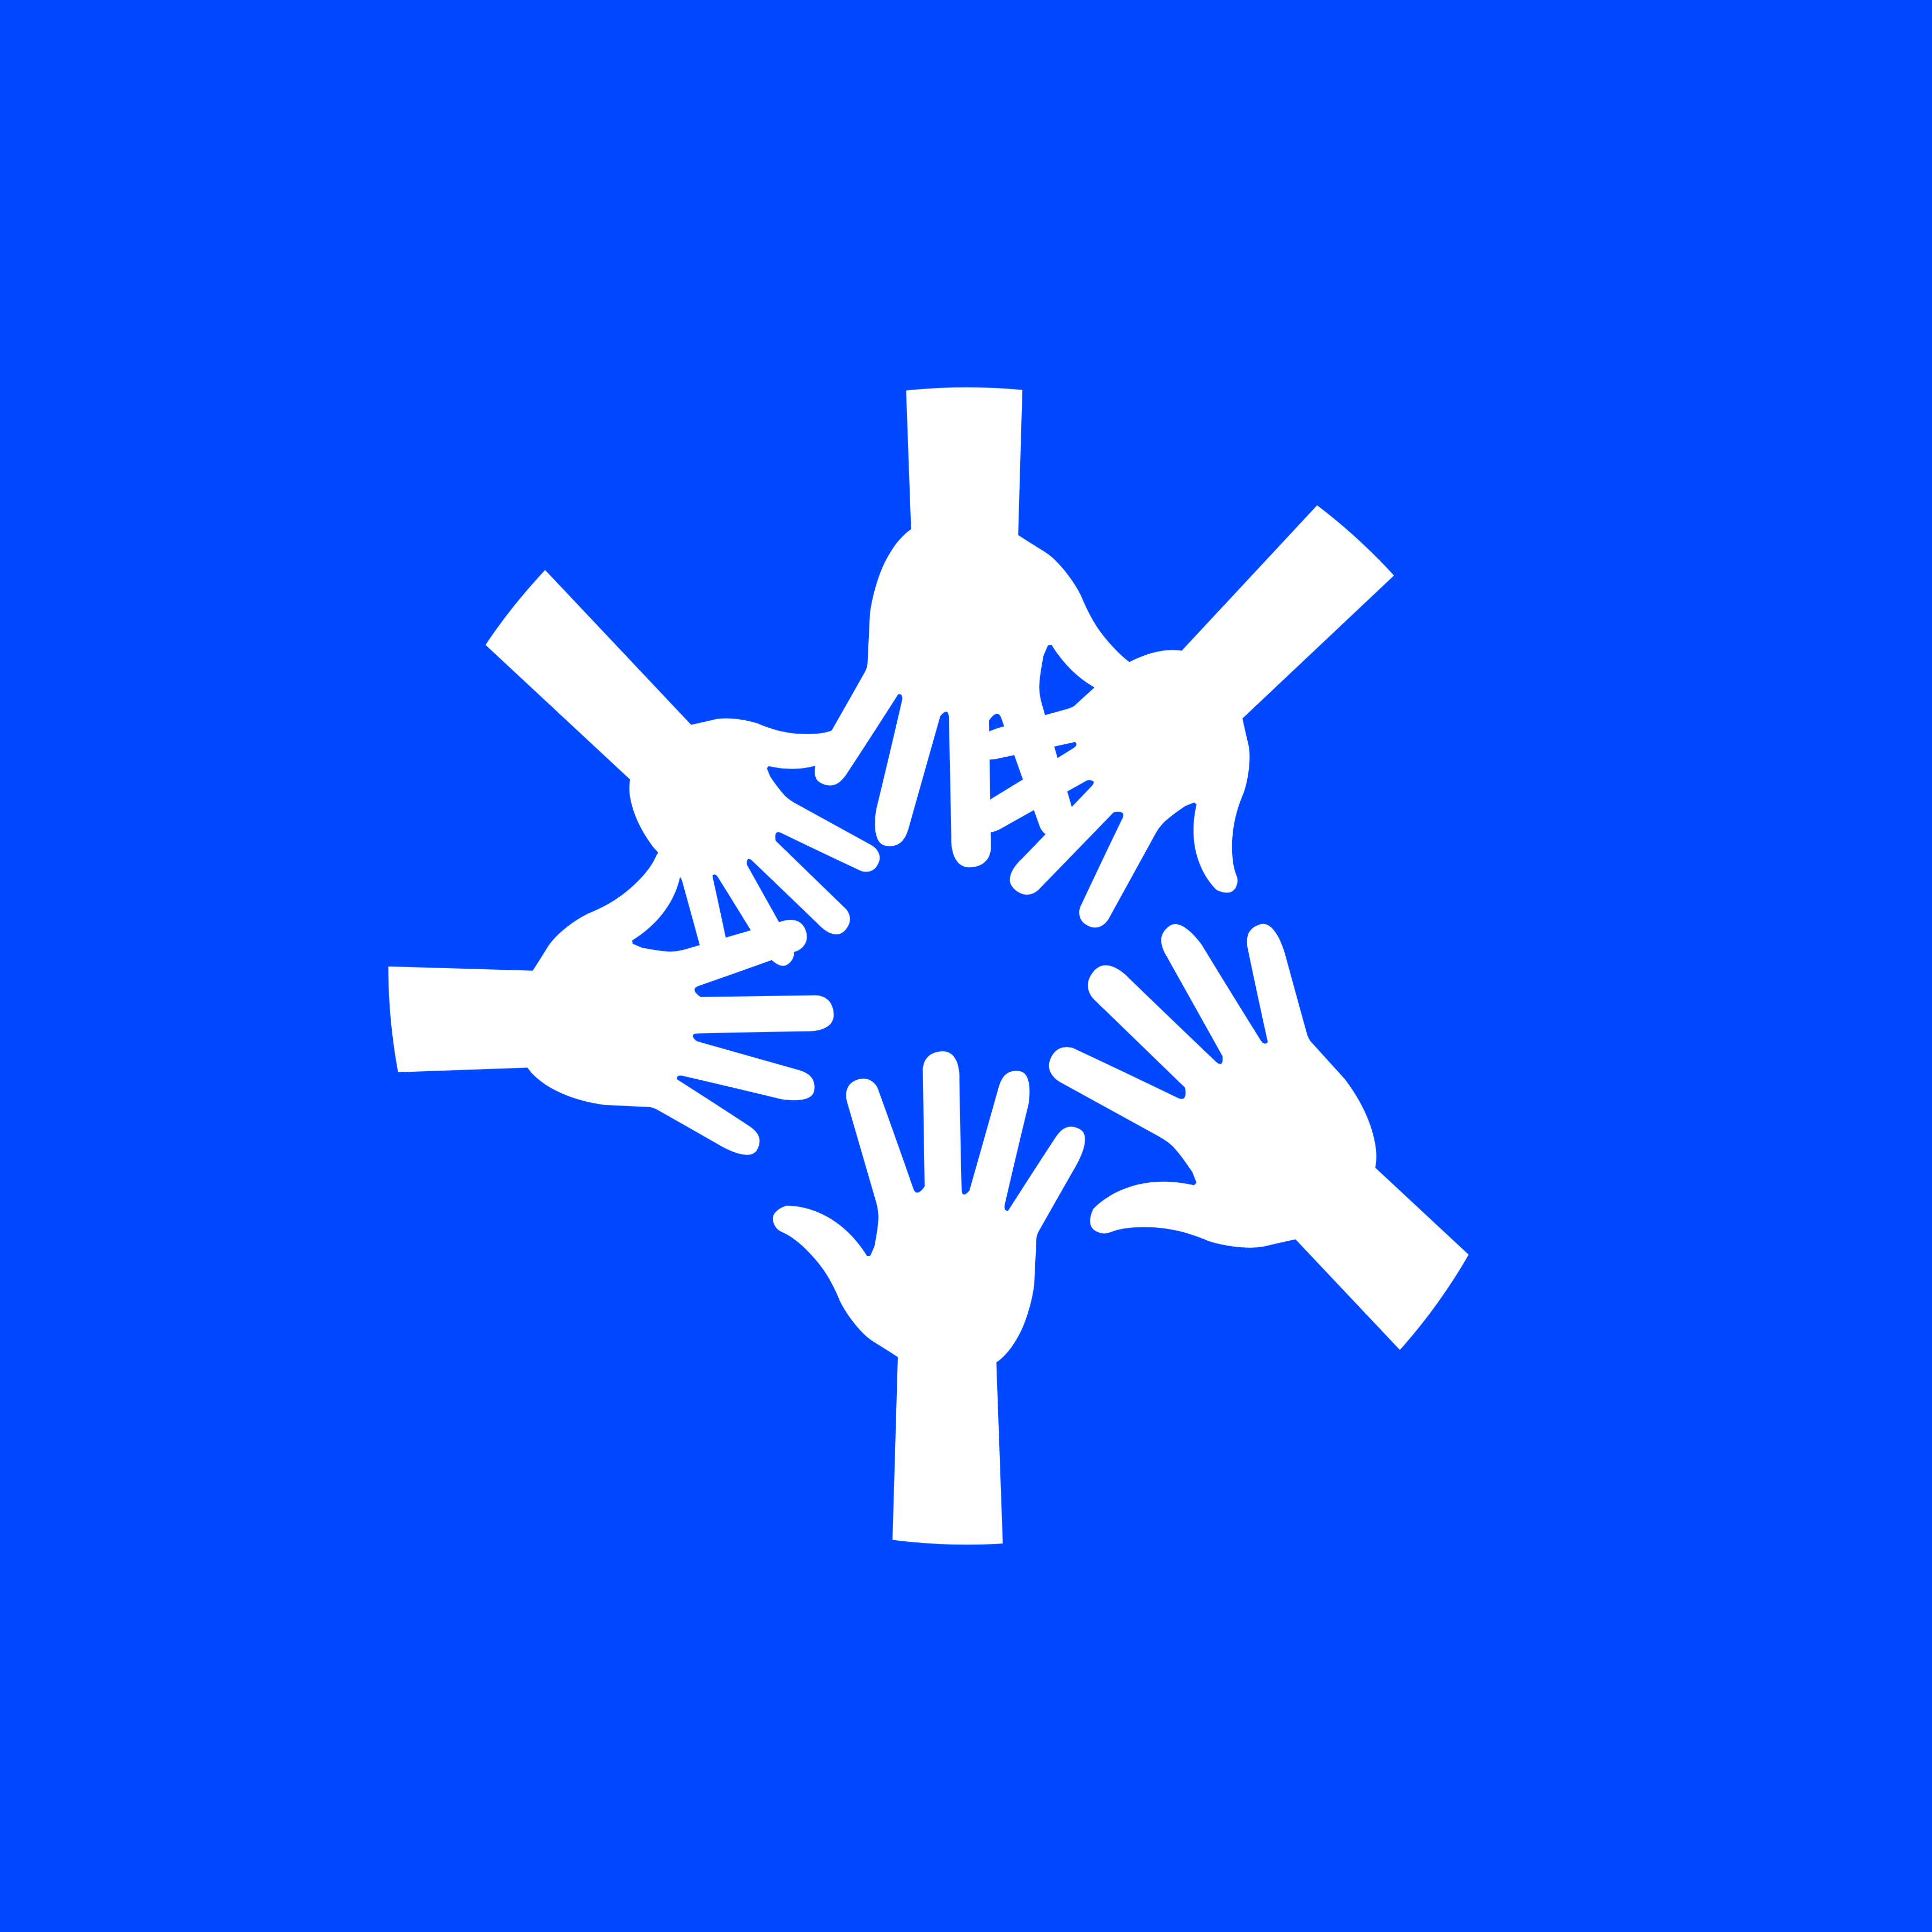 blue and white community symbol. Hands together in a circle